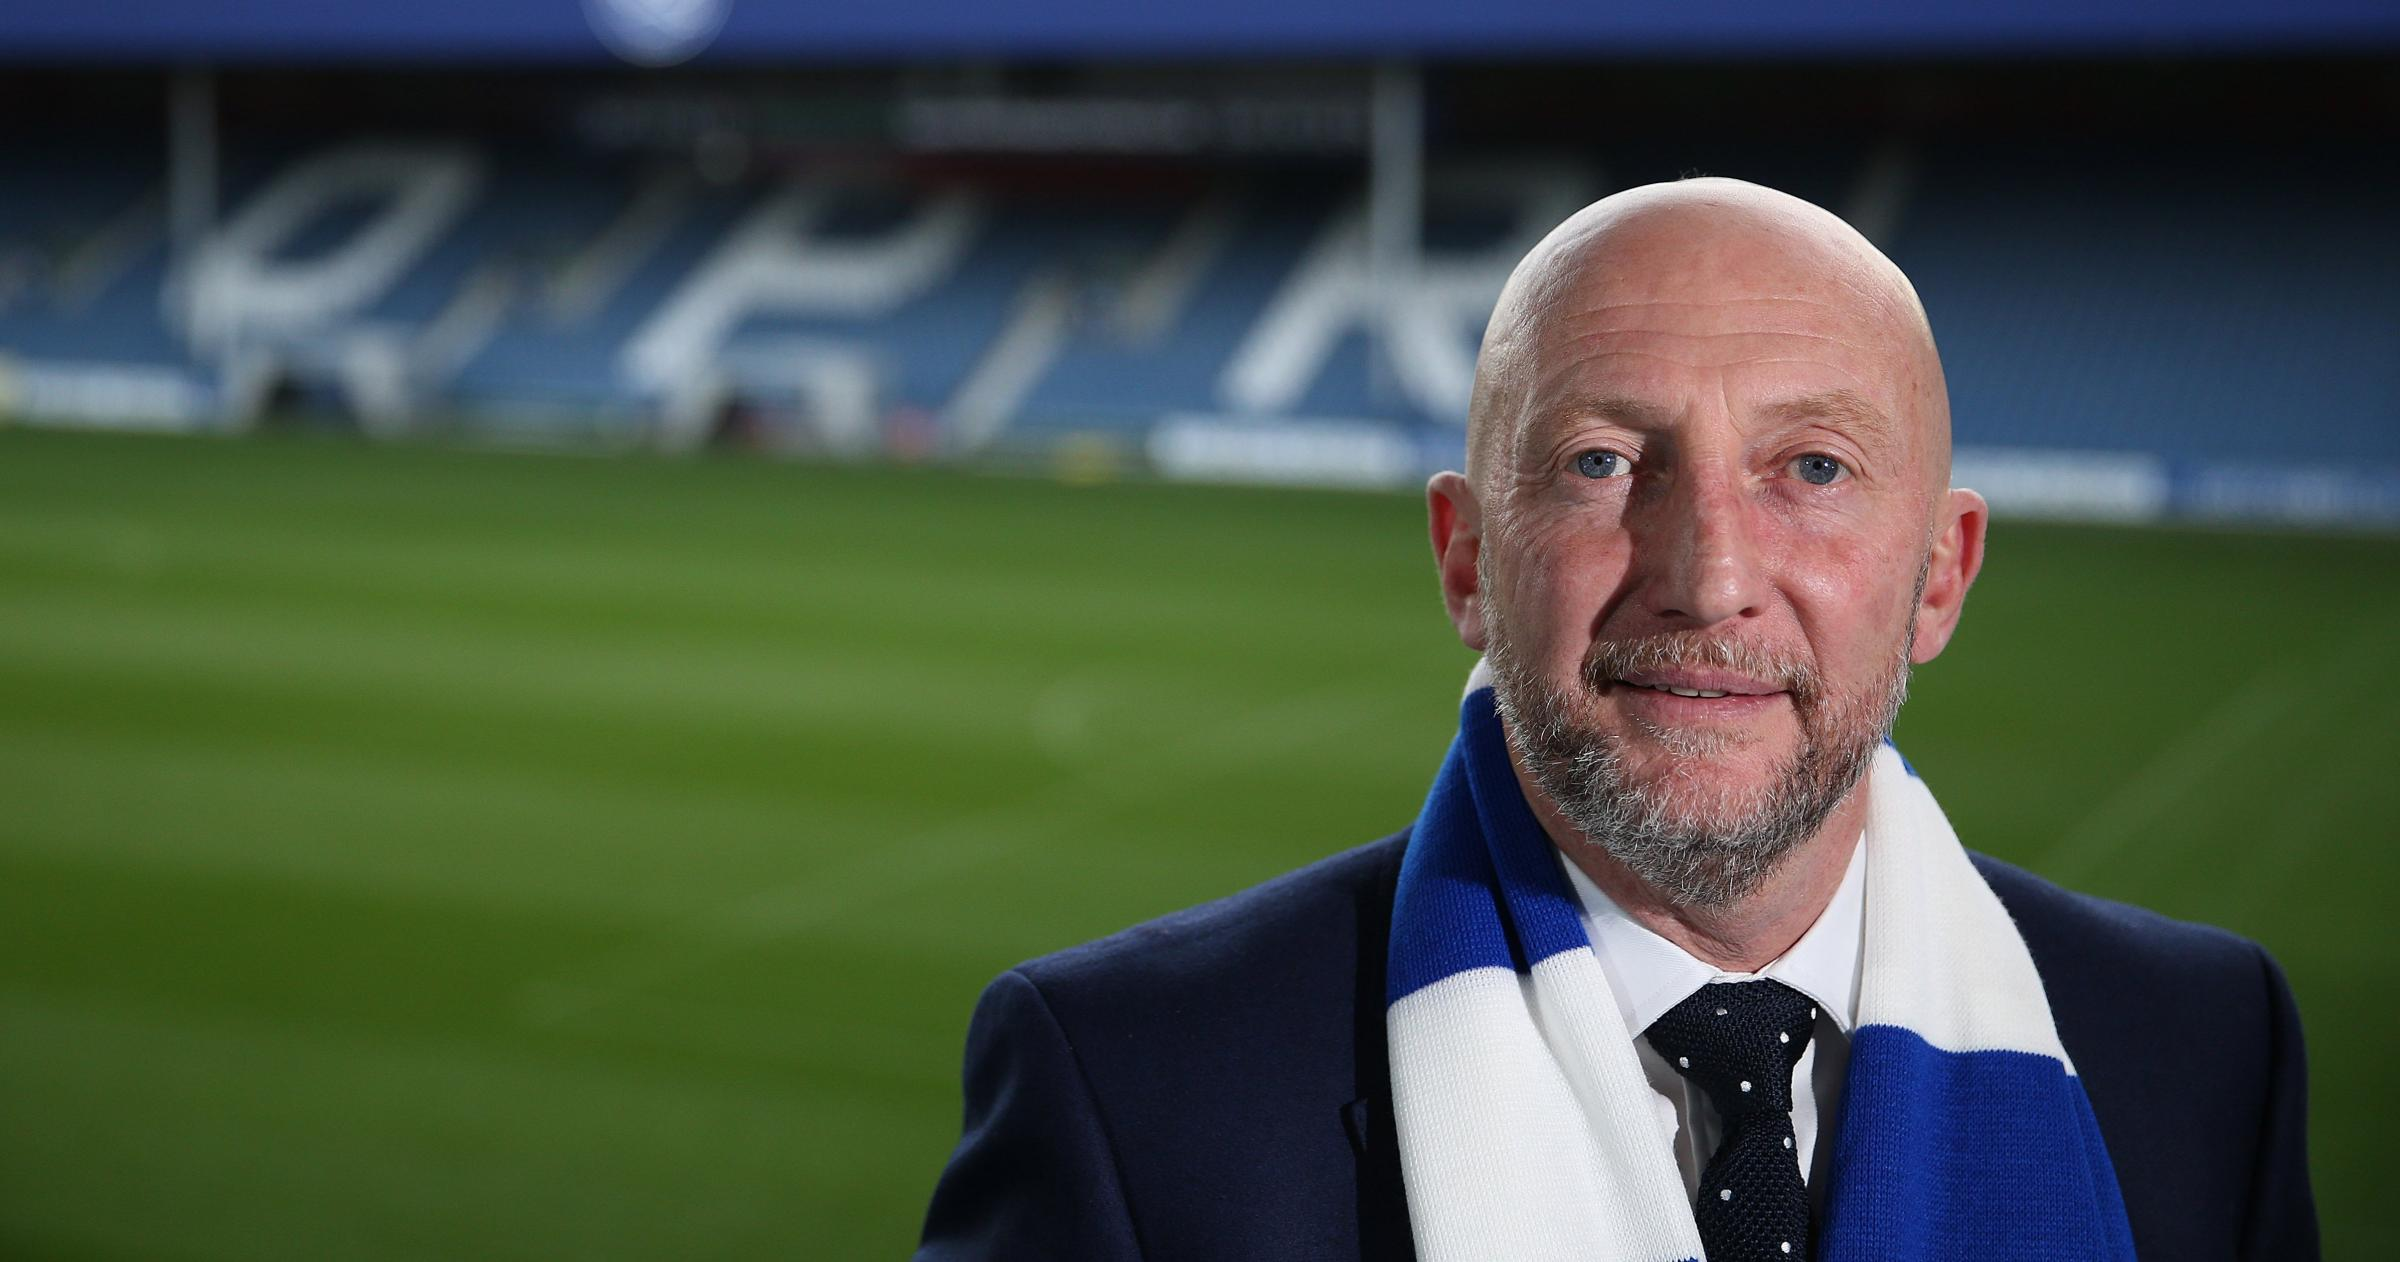 Ian Holloway was left frustrated at his side's FA Cup exit